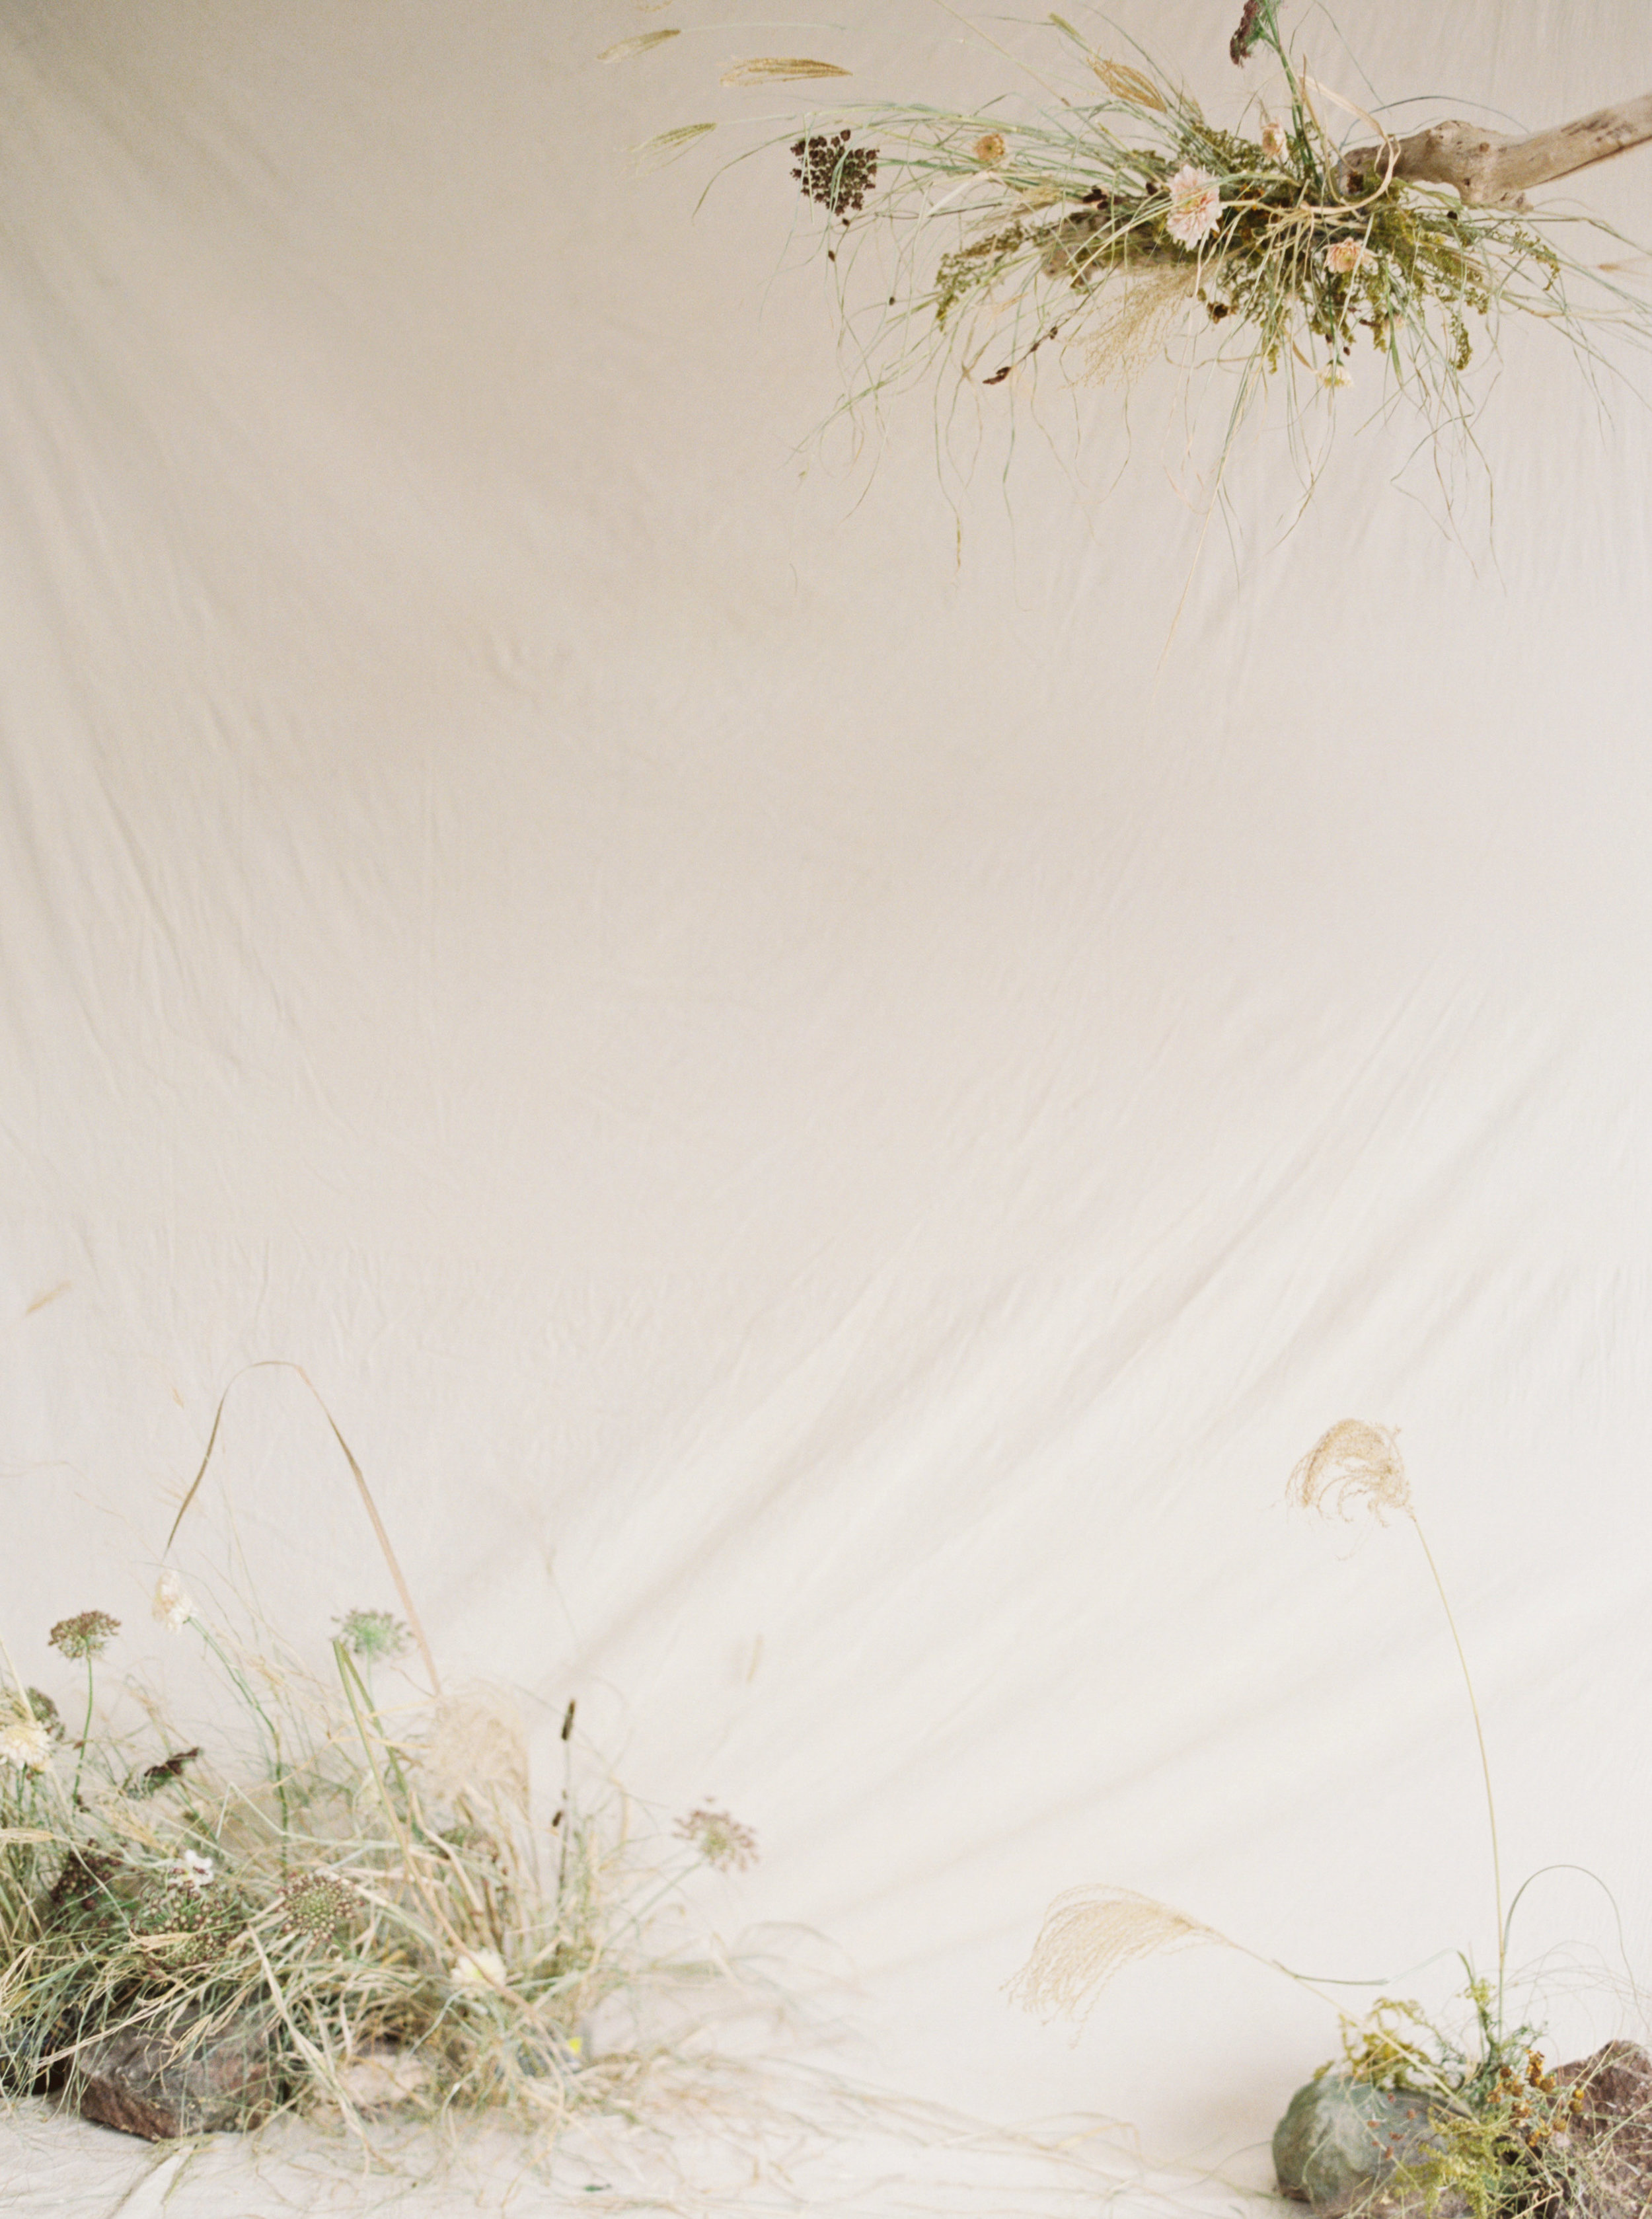 Artisan dried bridal flower arrangements for a Sydney wedding photoshoot - Autumn colour tones of artisan dried flower art installation with dreamy wedding ceremony backdrop design with trendy pampas grass by Idyll Flower Studio and Prajna Flowers and captured on fine art film by Sheri McMahon Photography